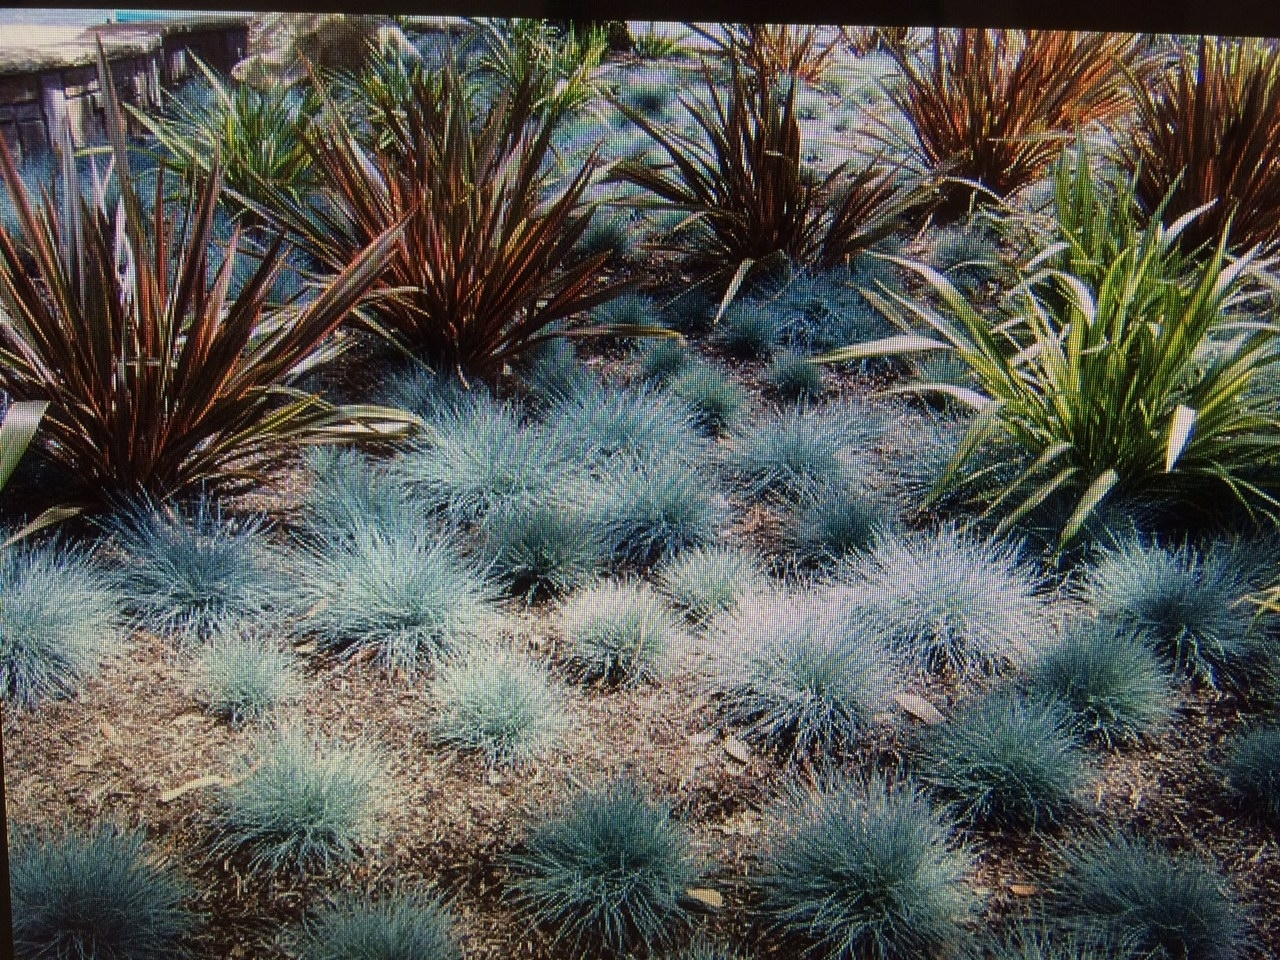 Fireman Design And Landscape Designing The Dream In Desert Landscaping Plants Ideal Desert Landscaping Plants At Home